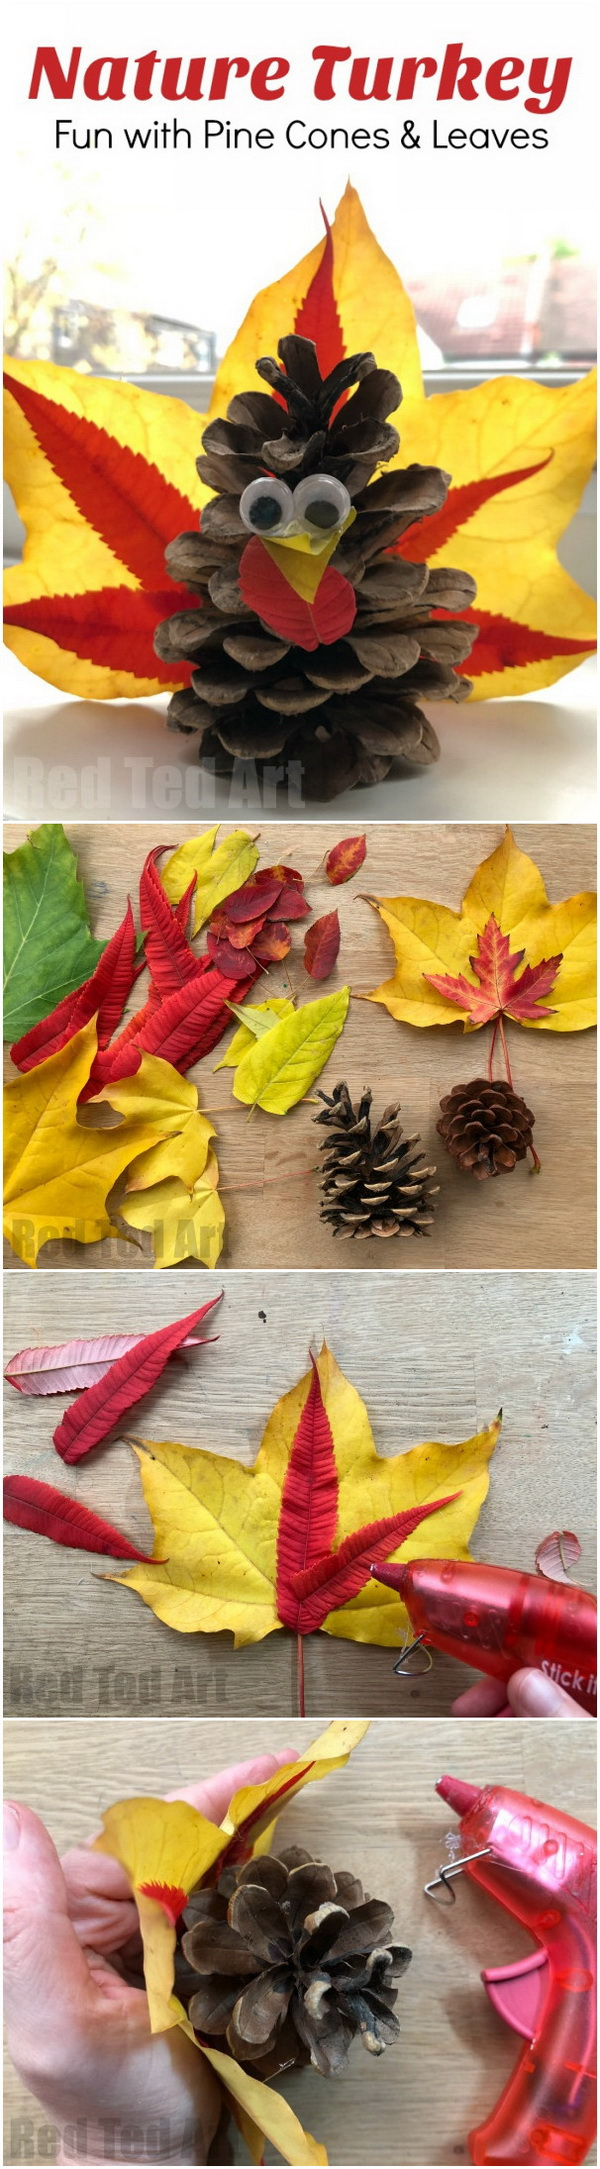 30 Festive And Fun Pine Cone Crafts Listing More